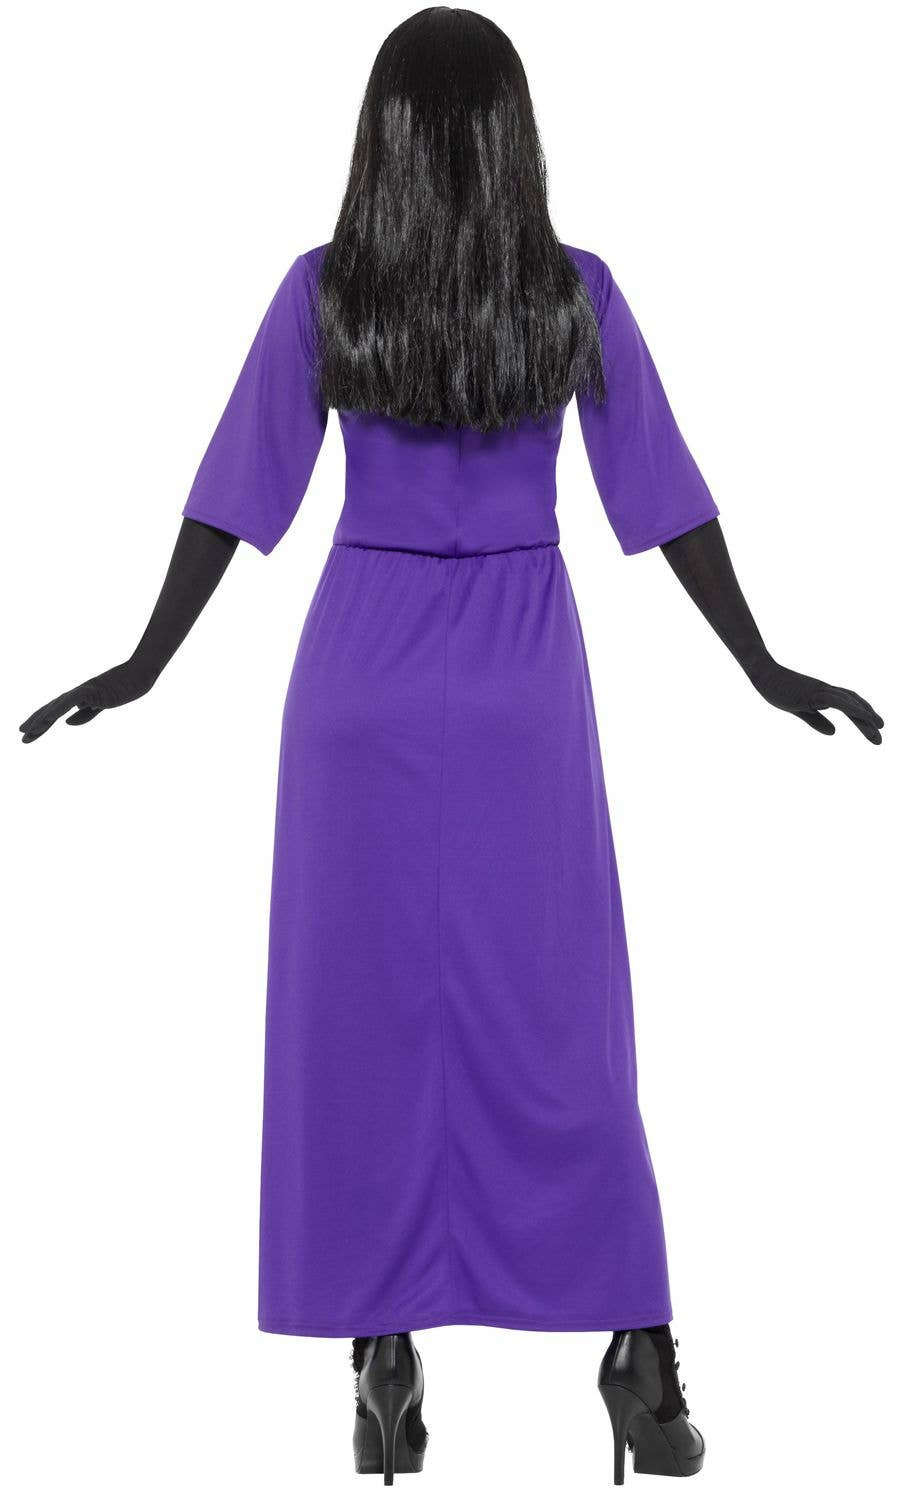 Long Purple Witch Stretch Costume The Witches Costume For Women